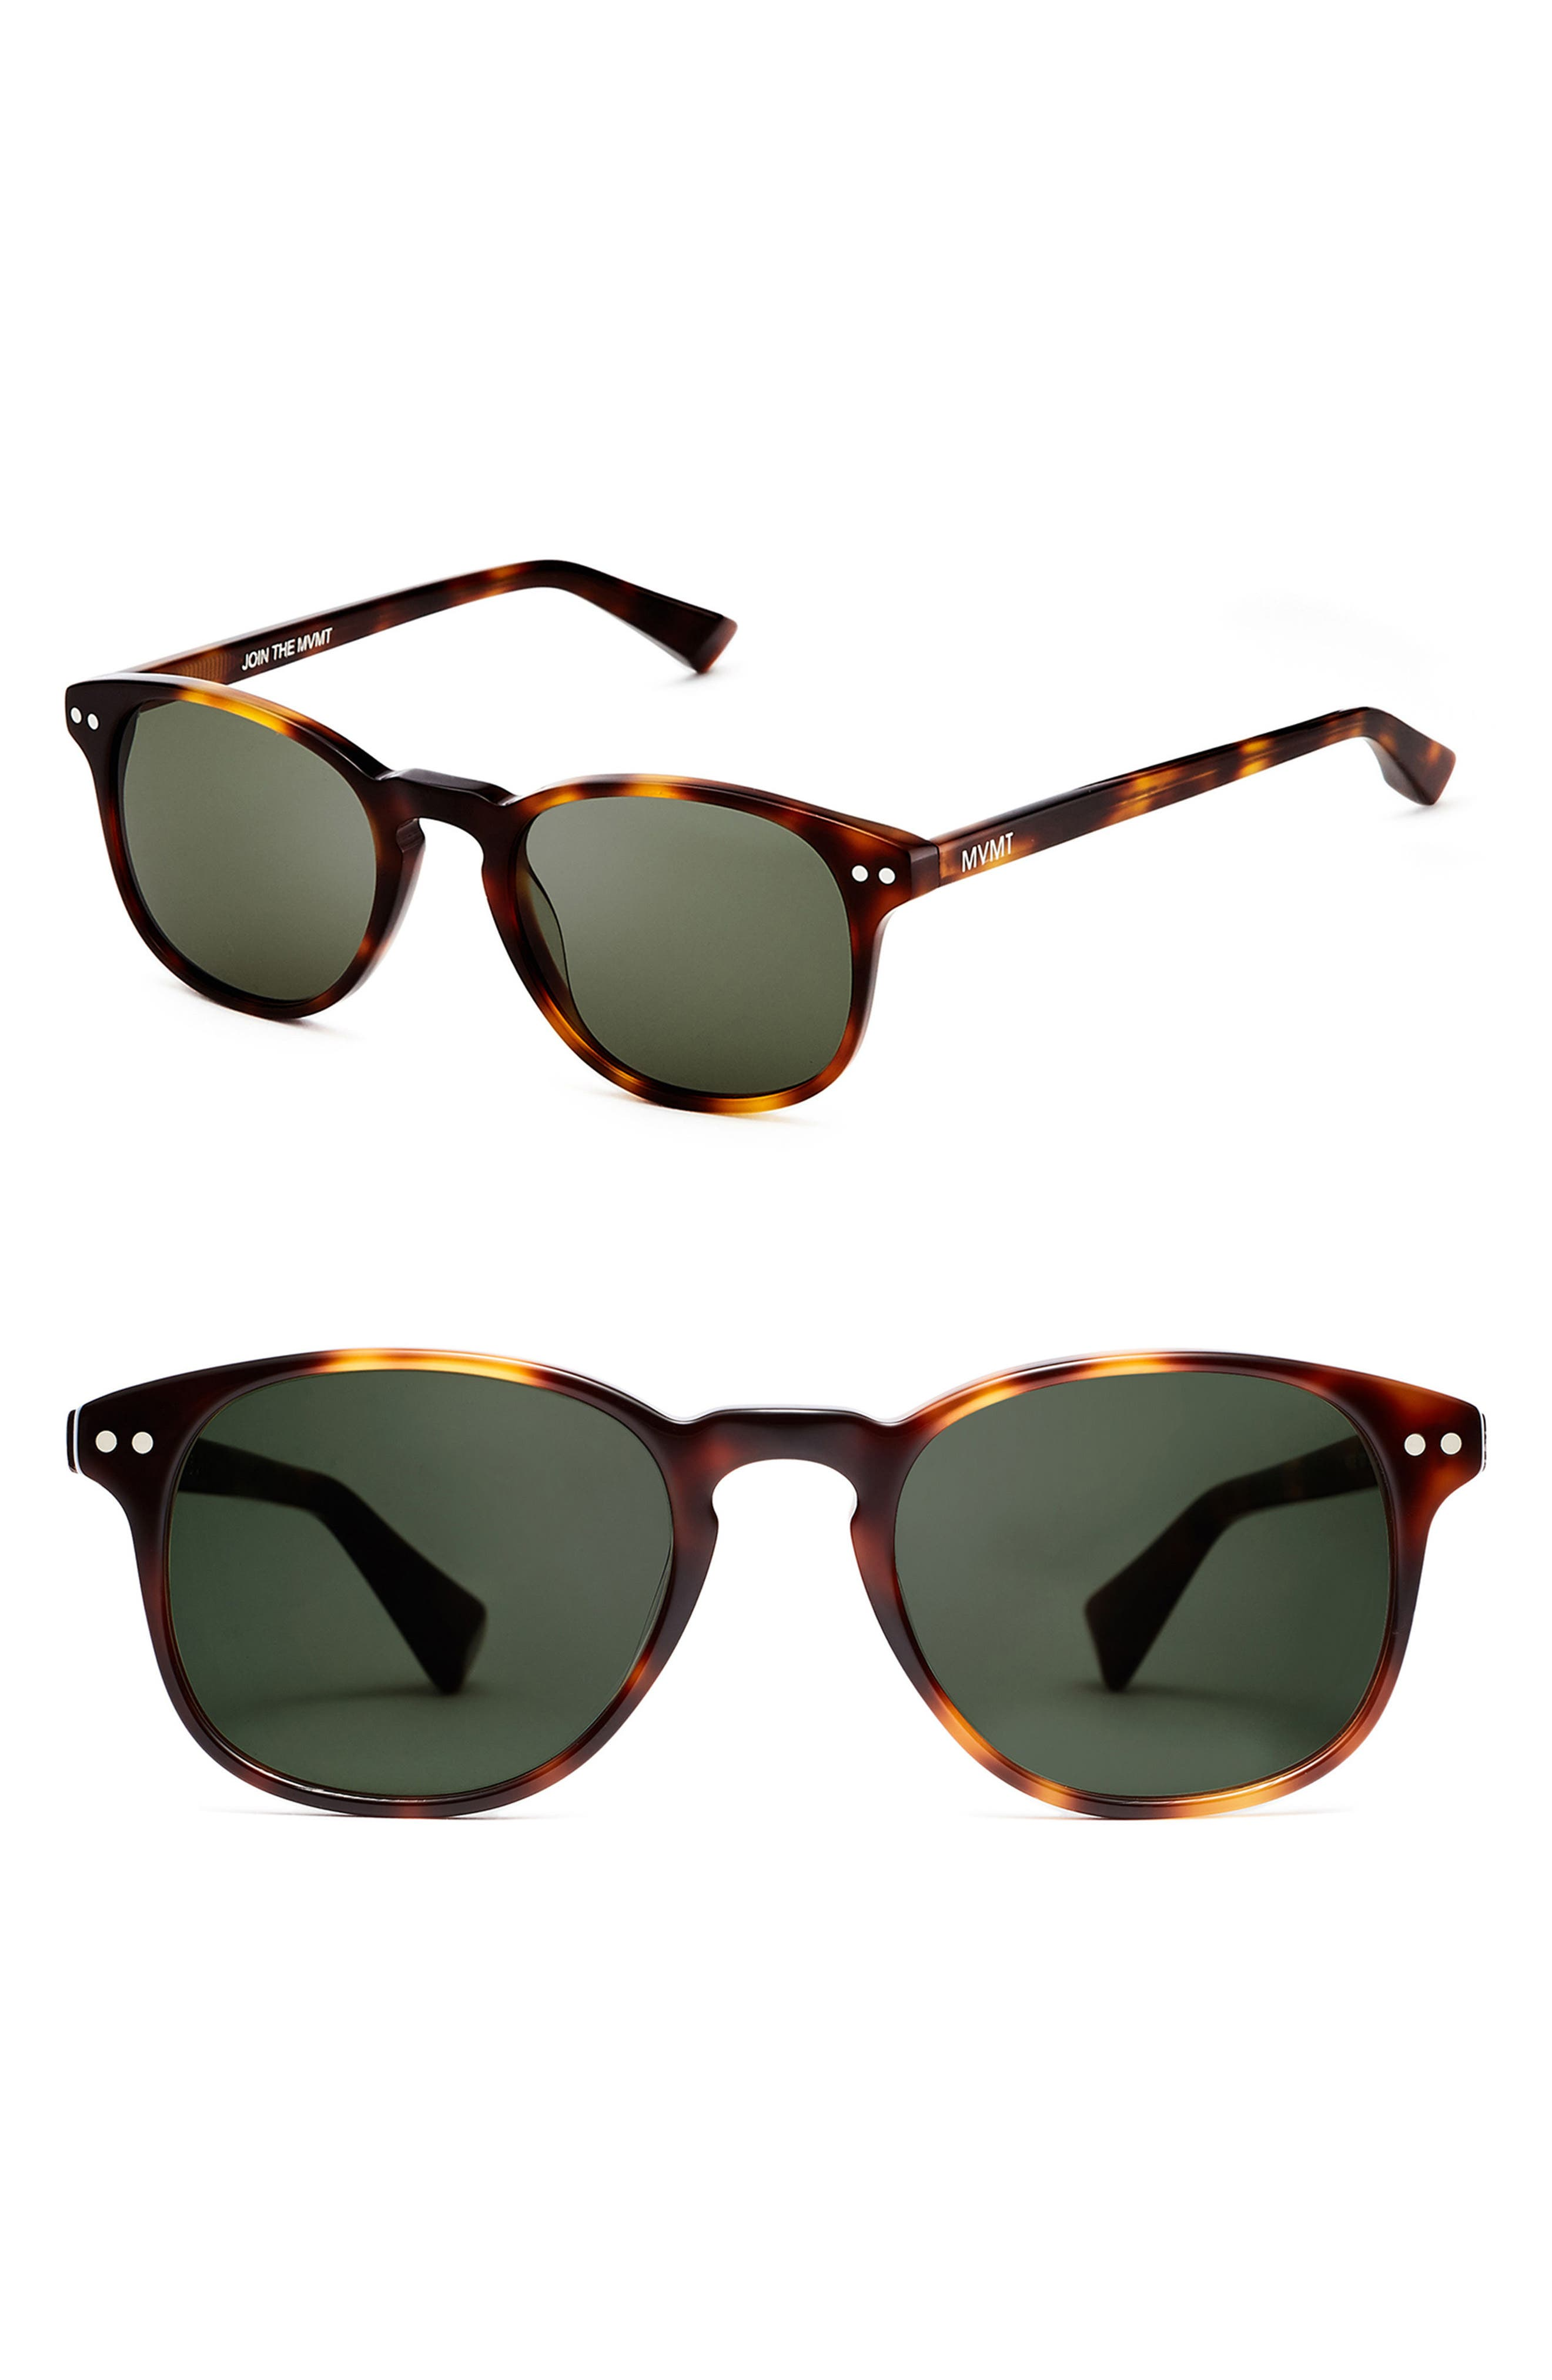 Hyde 57mm Polarized Round Sunglasses,                             Main thumbnail 1, color,                             Whiskey Tortoise